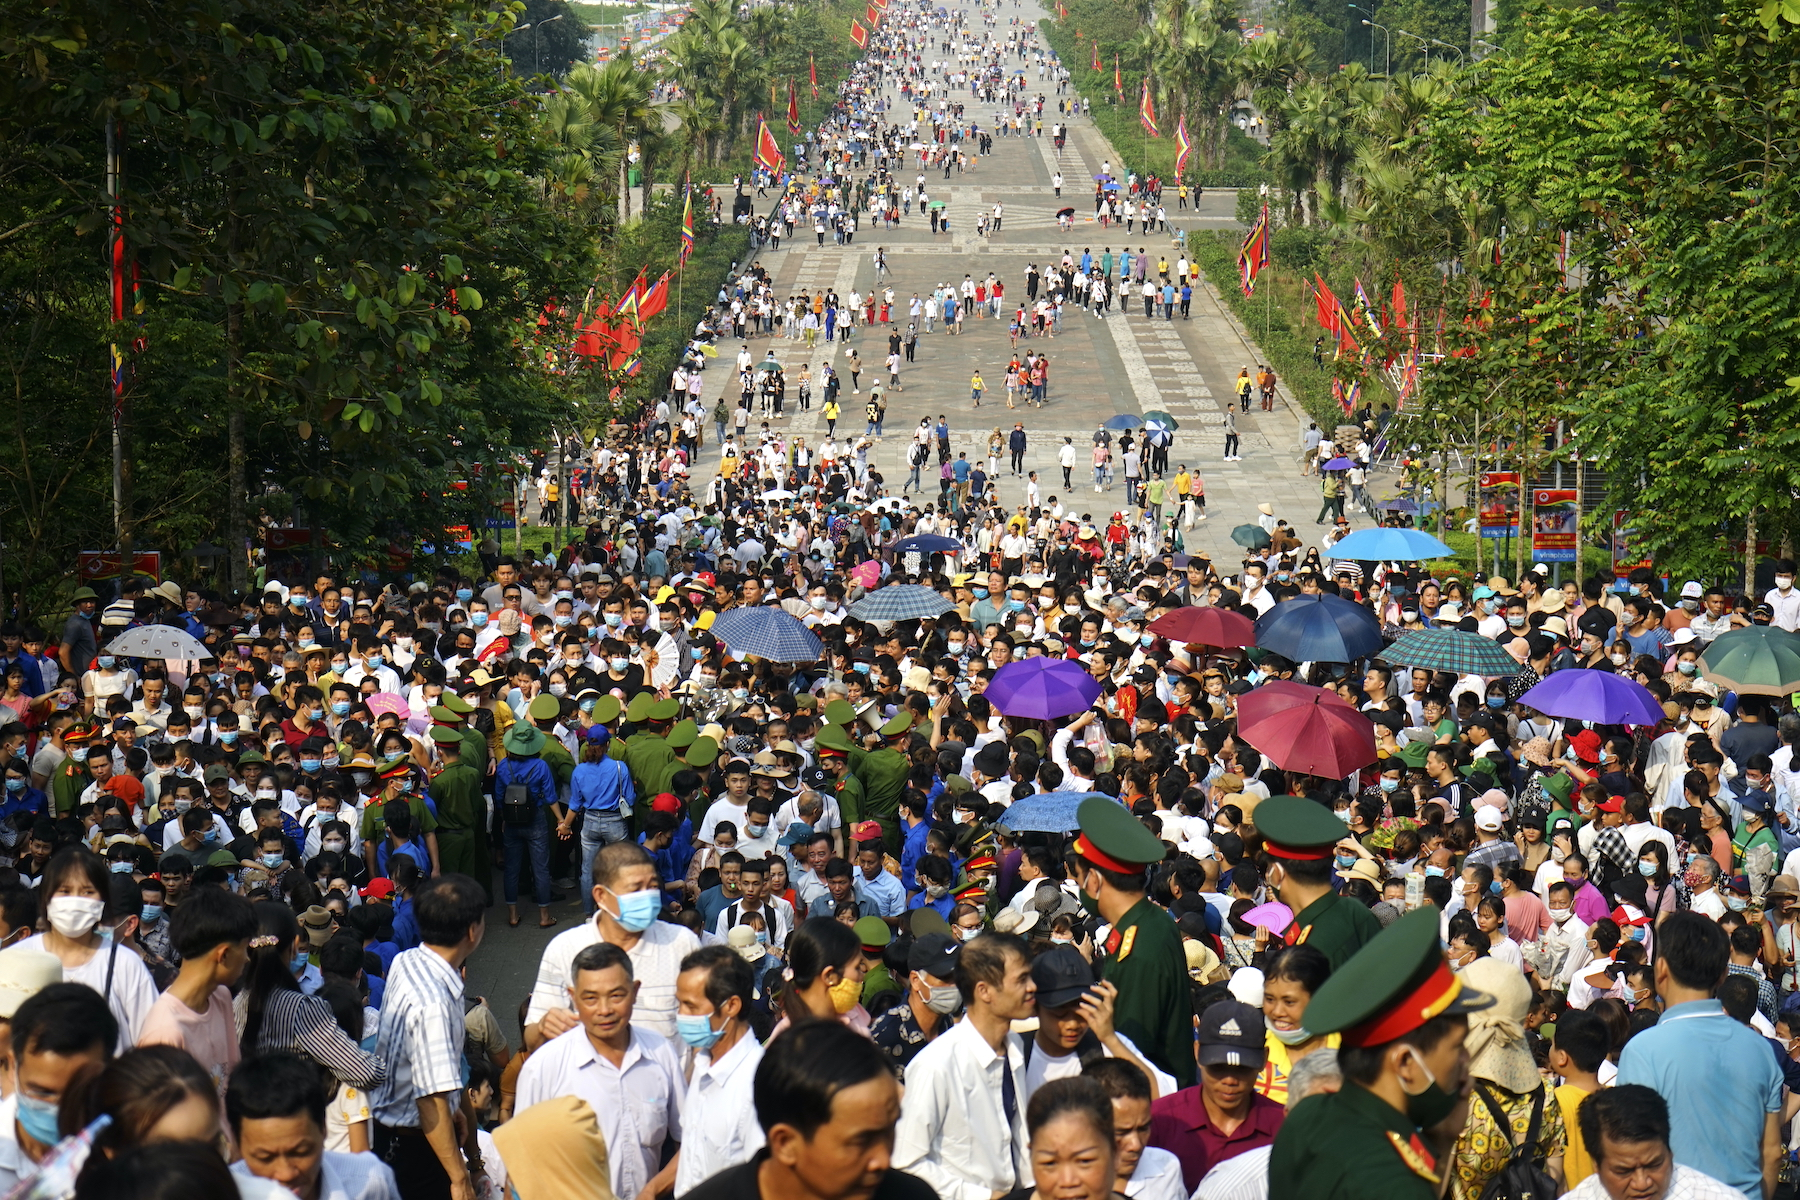 Thousands flock to worship Vietnam founding fathers